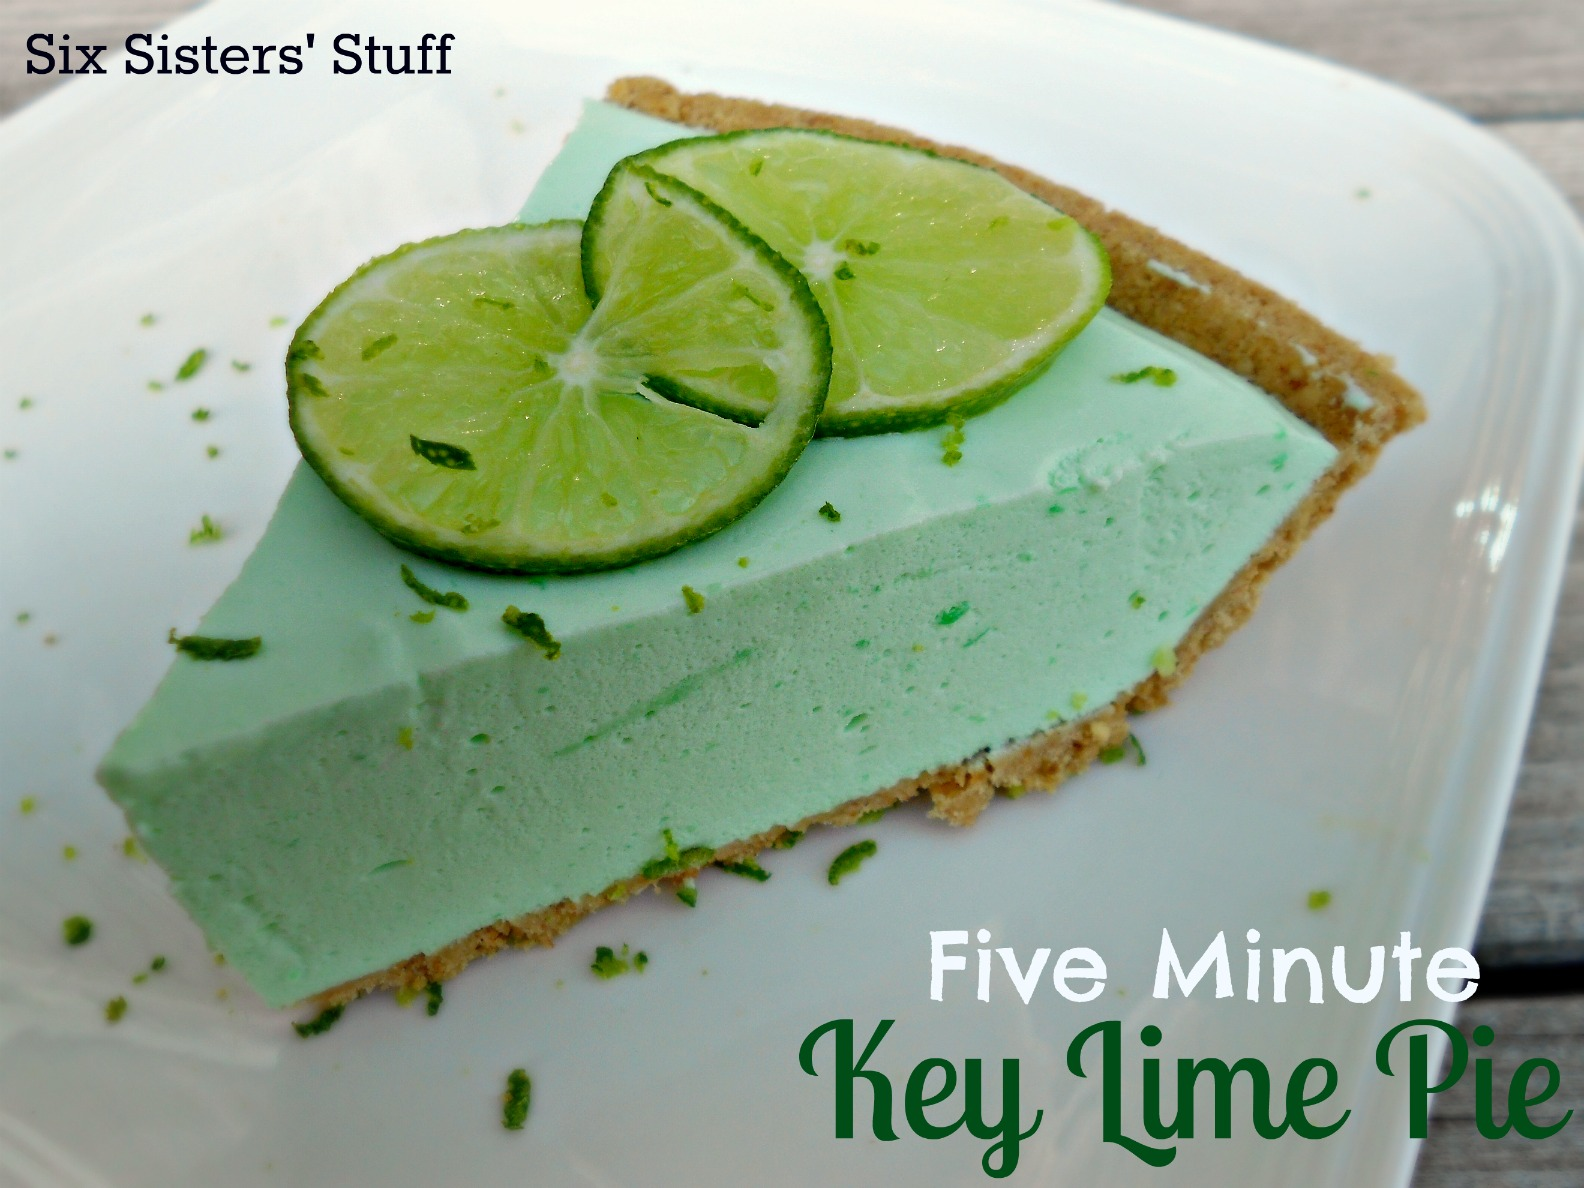 Minute Creamy Key Lime Pie / Six Sisters' Stuff | Six Sisters' Stuff